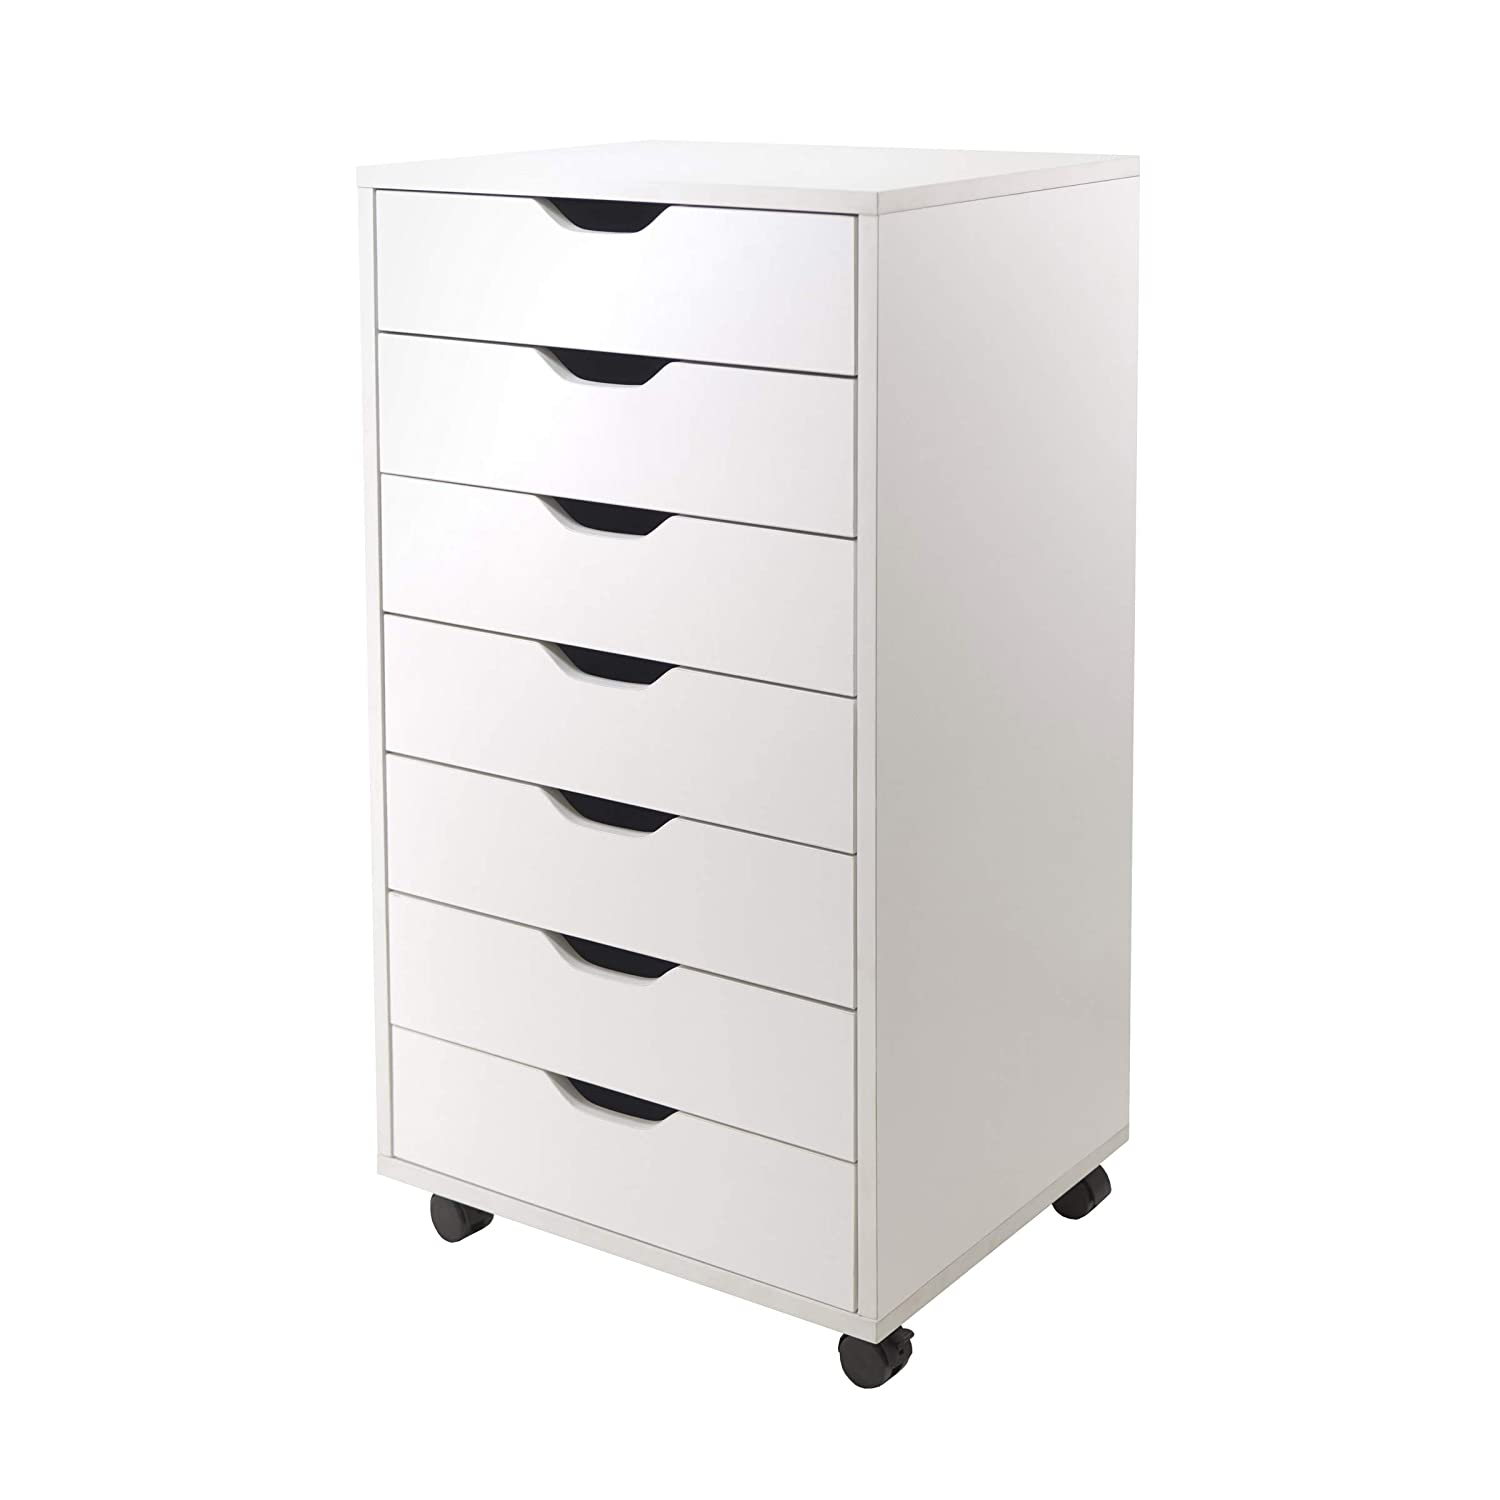 Winsome 10792 Halifax Storage/Organization, 7 Drawer, White